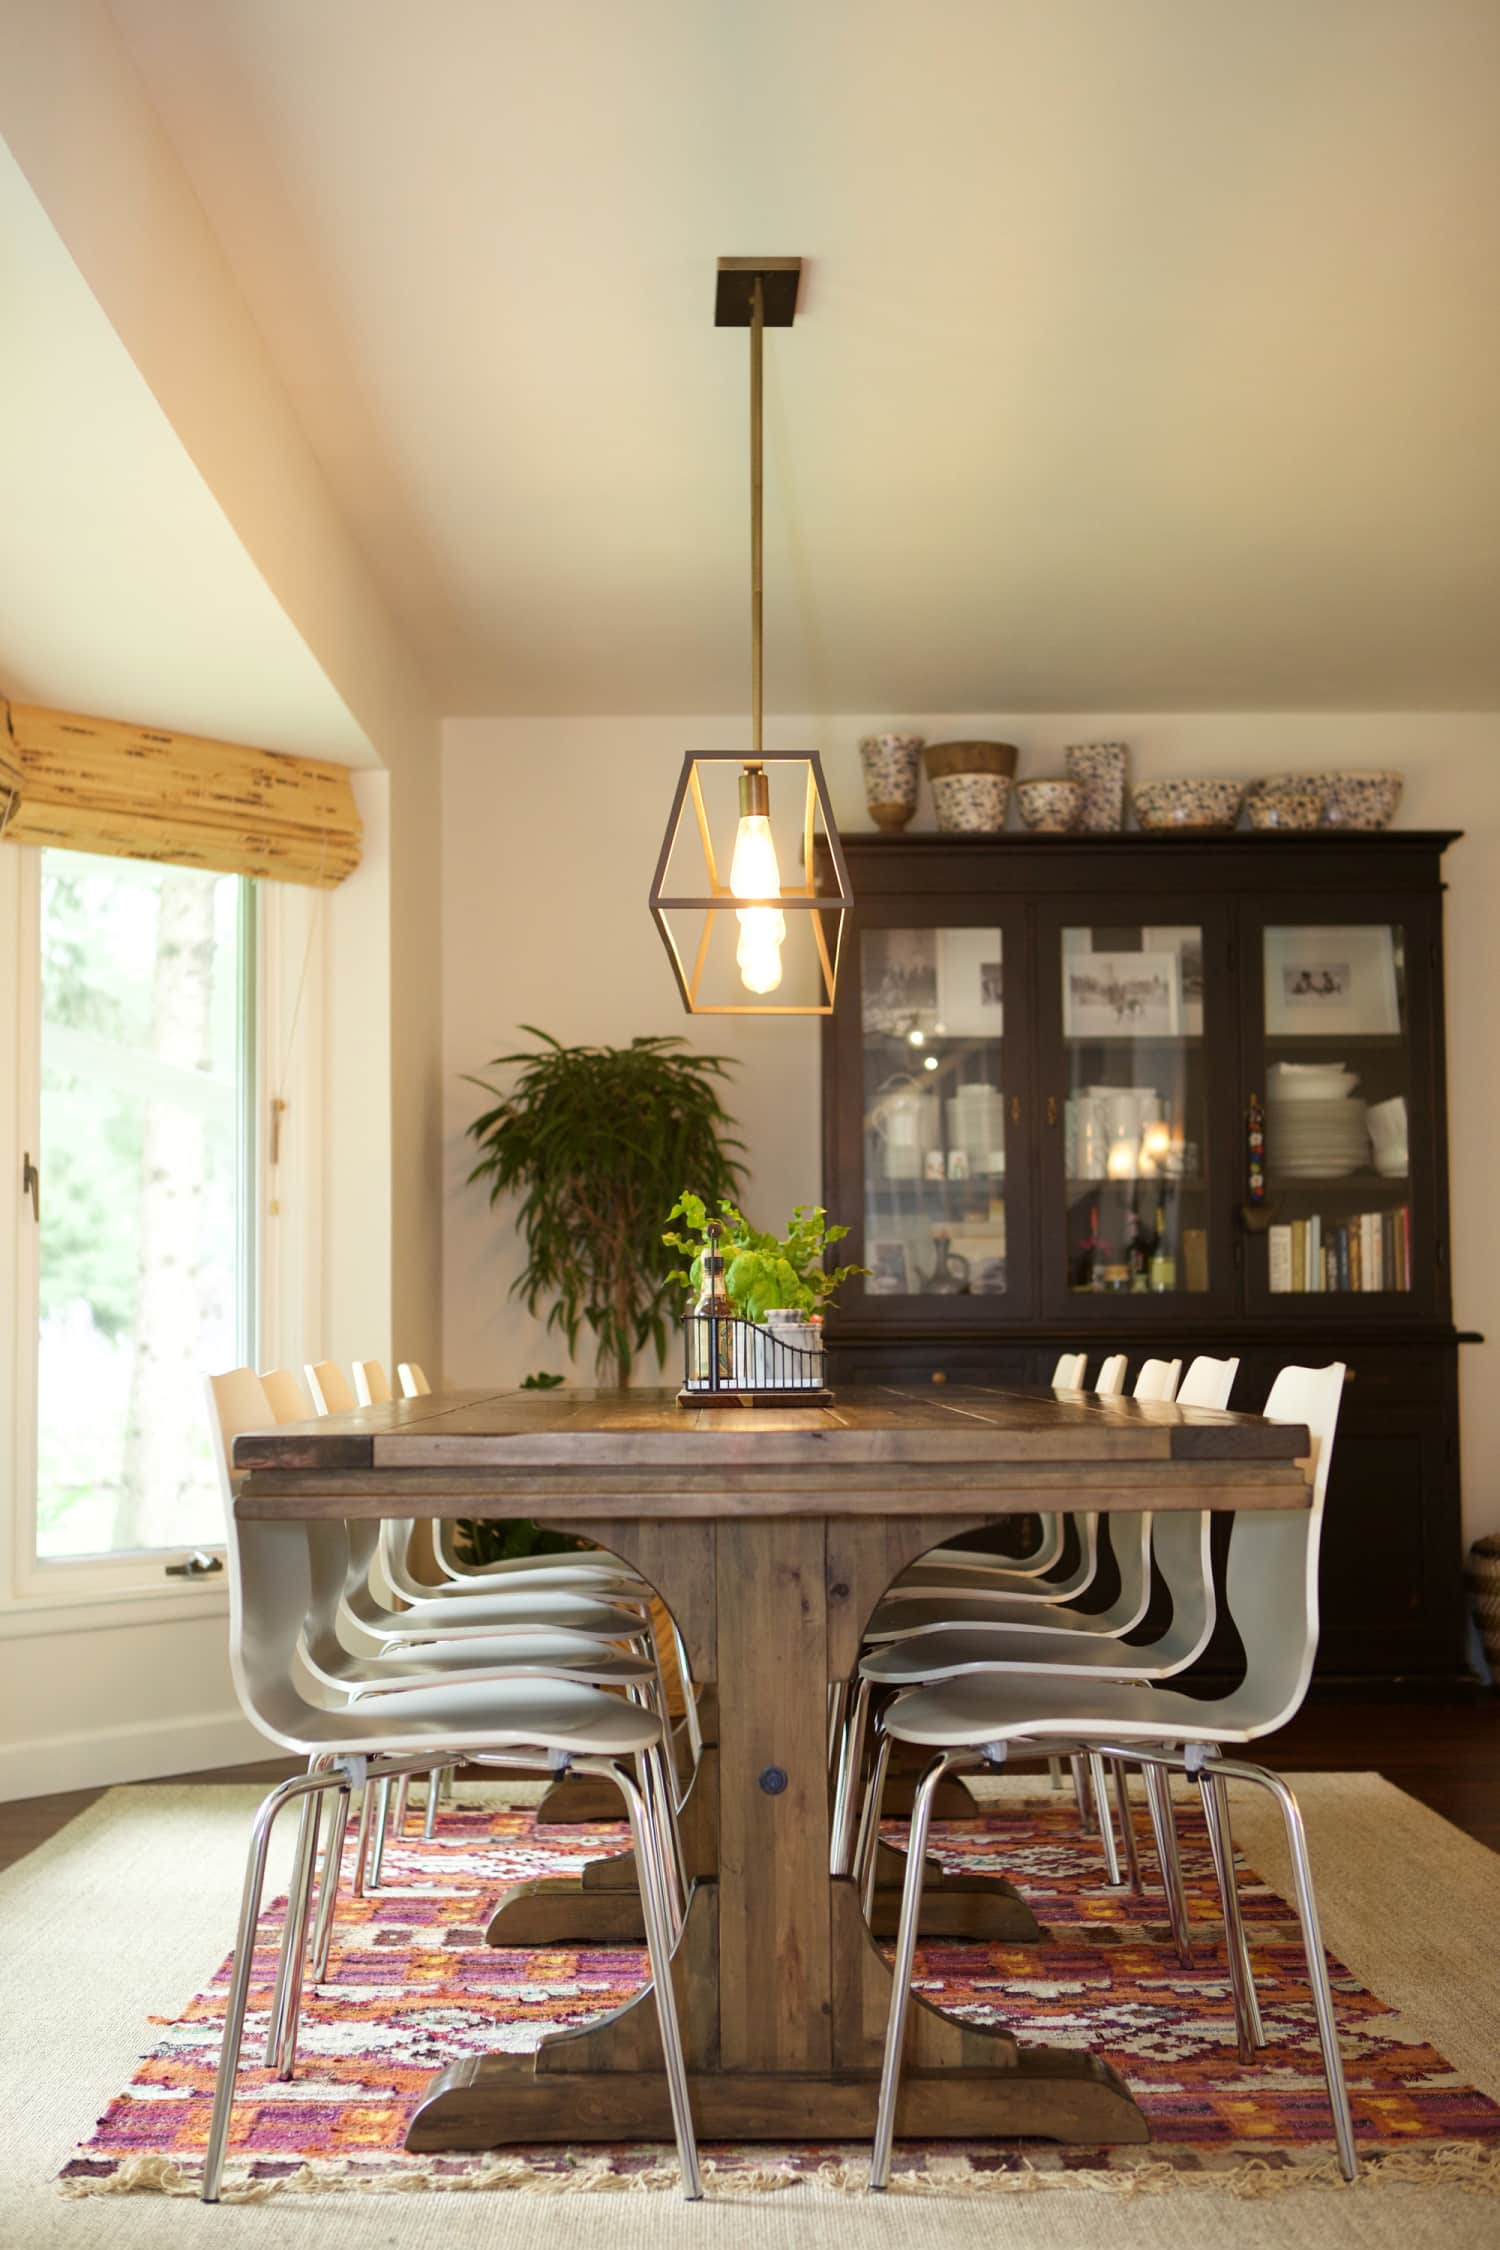 Get the Look: Eclectic, Timeless & Family-Ready